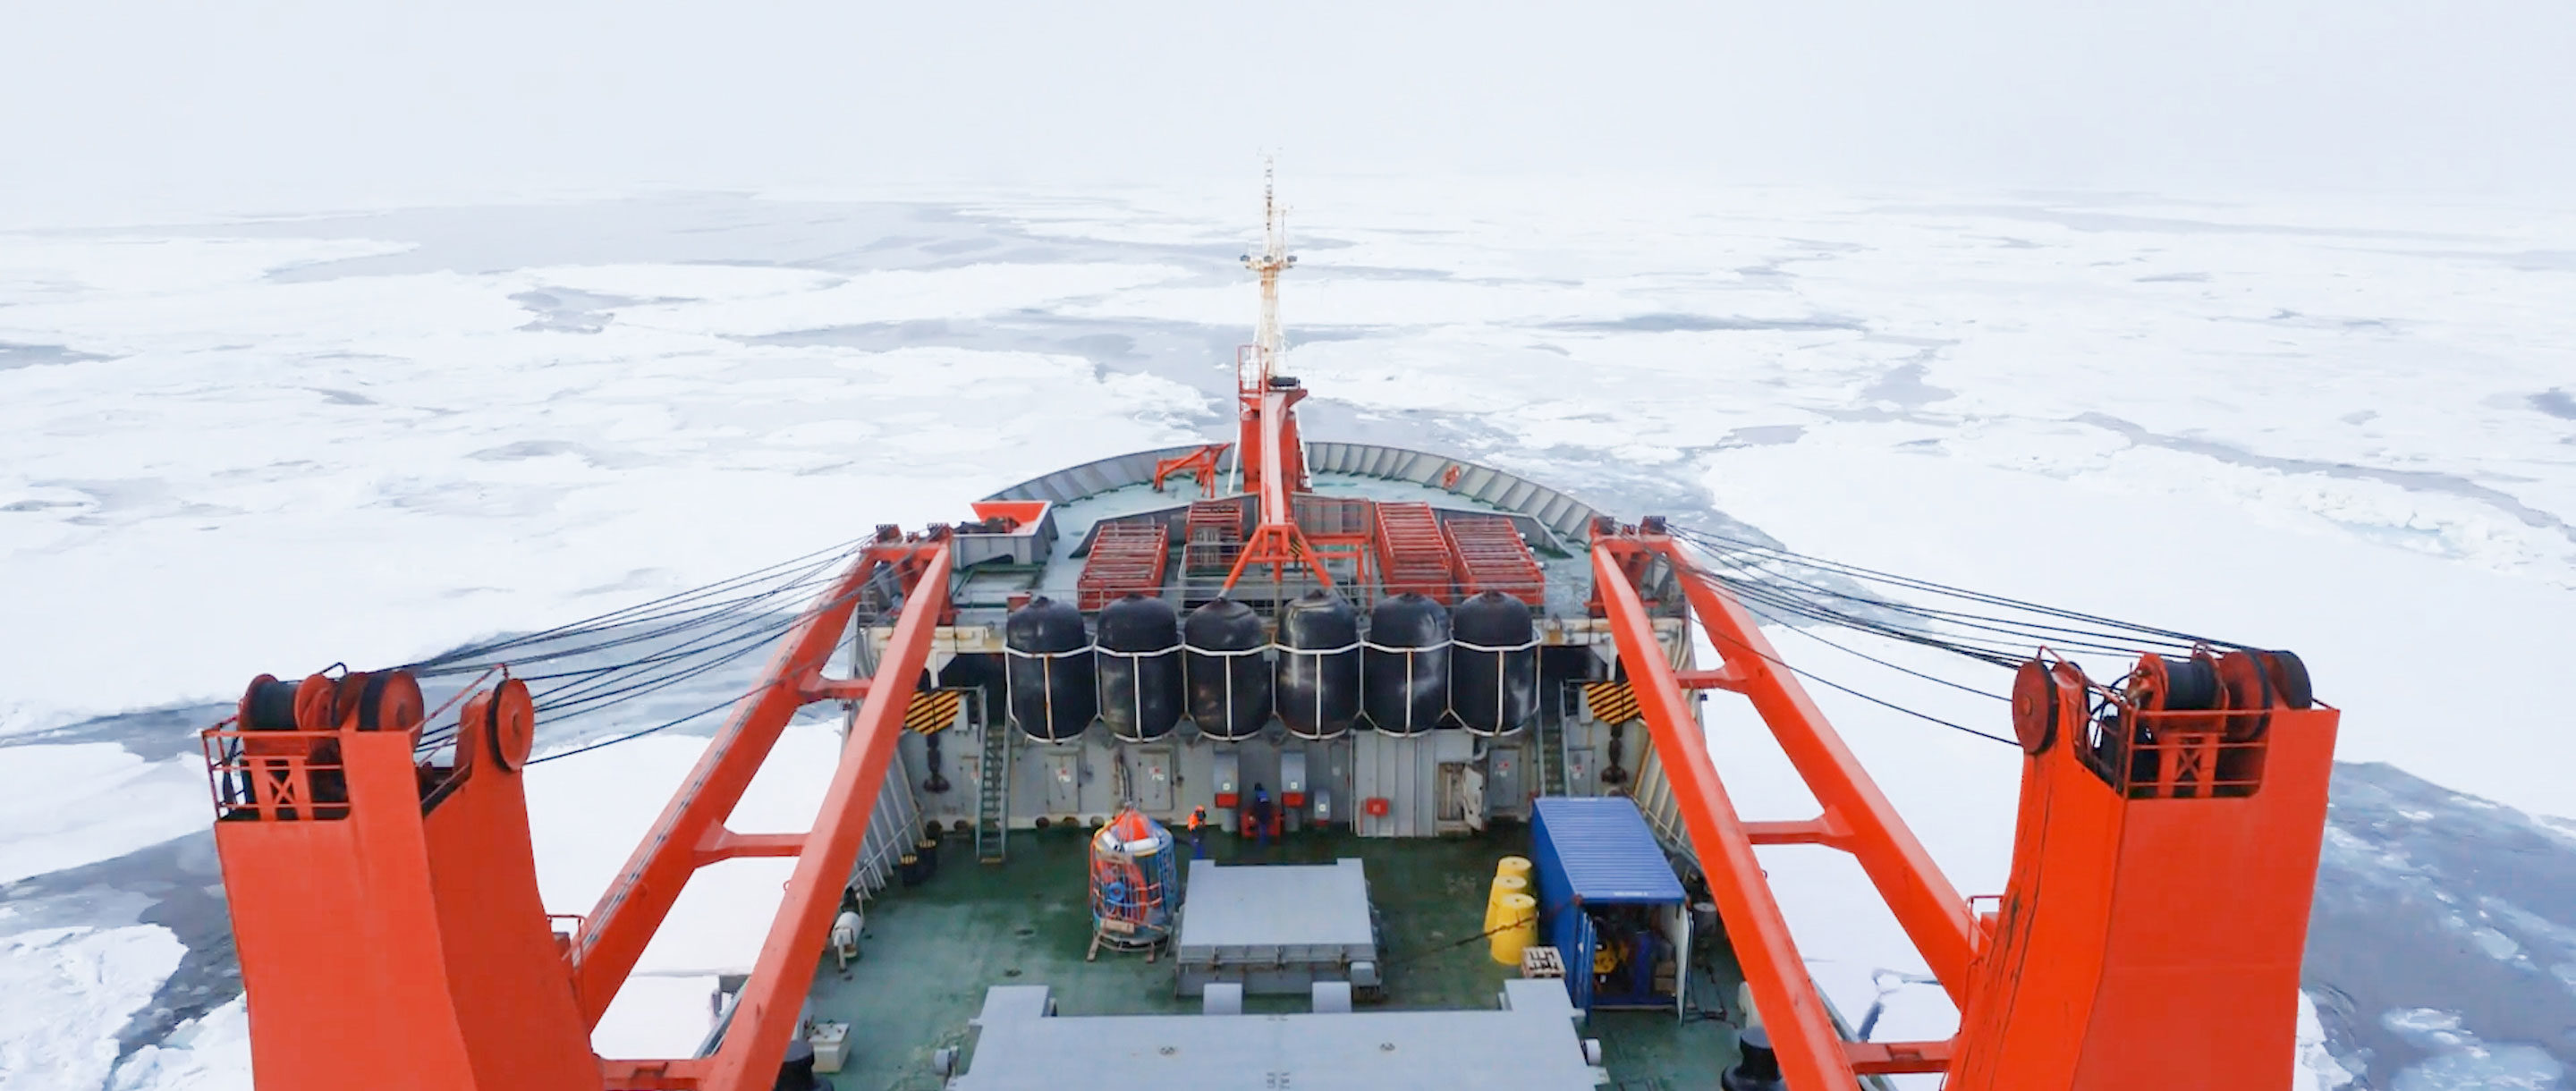 Video of an icebreaker moving through ice floes.